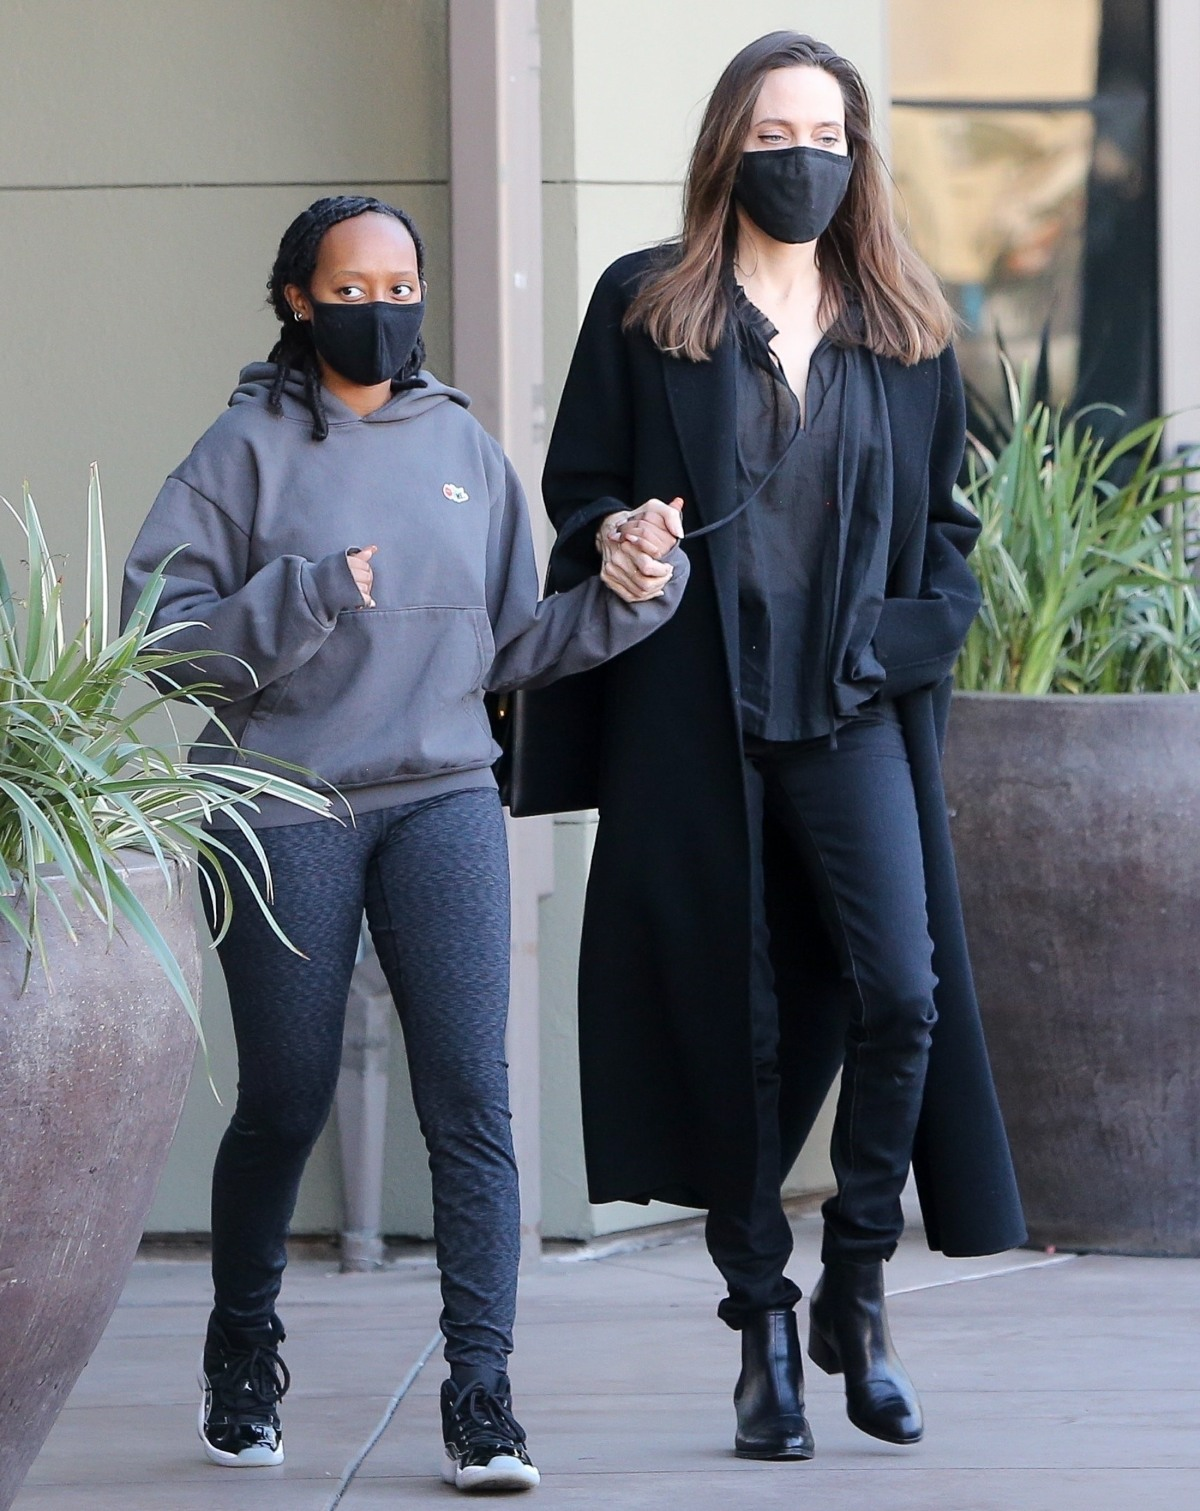 Angelina Jolie steps out with 16-year-old daughter Zahara for a Target run